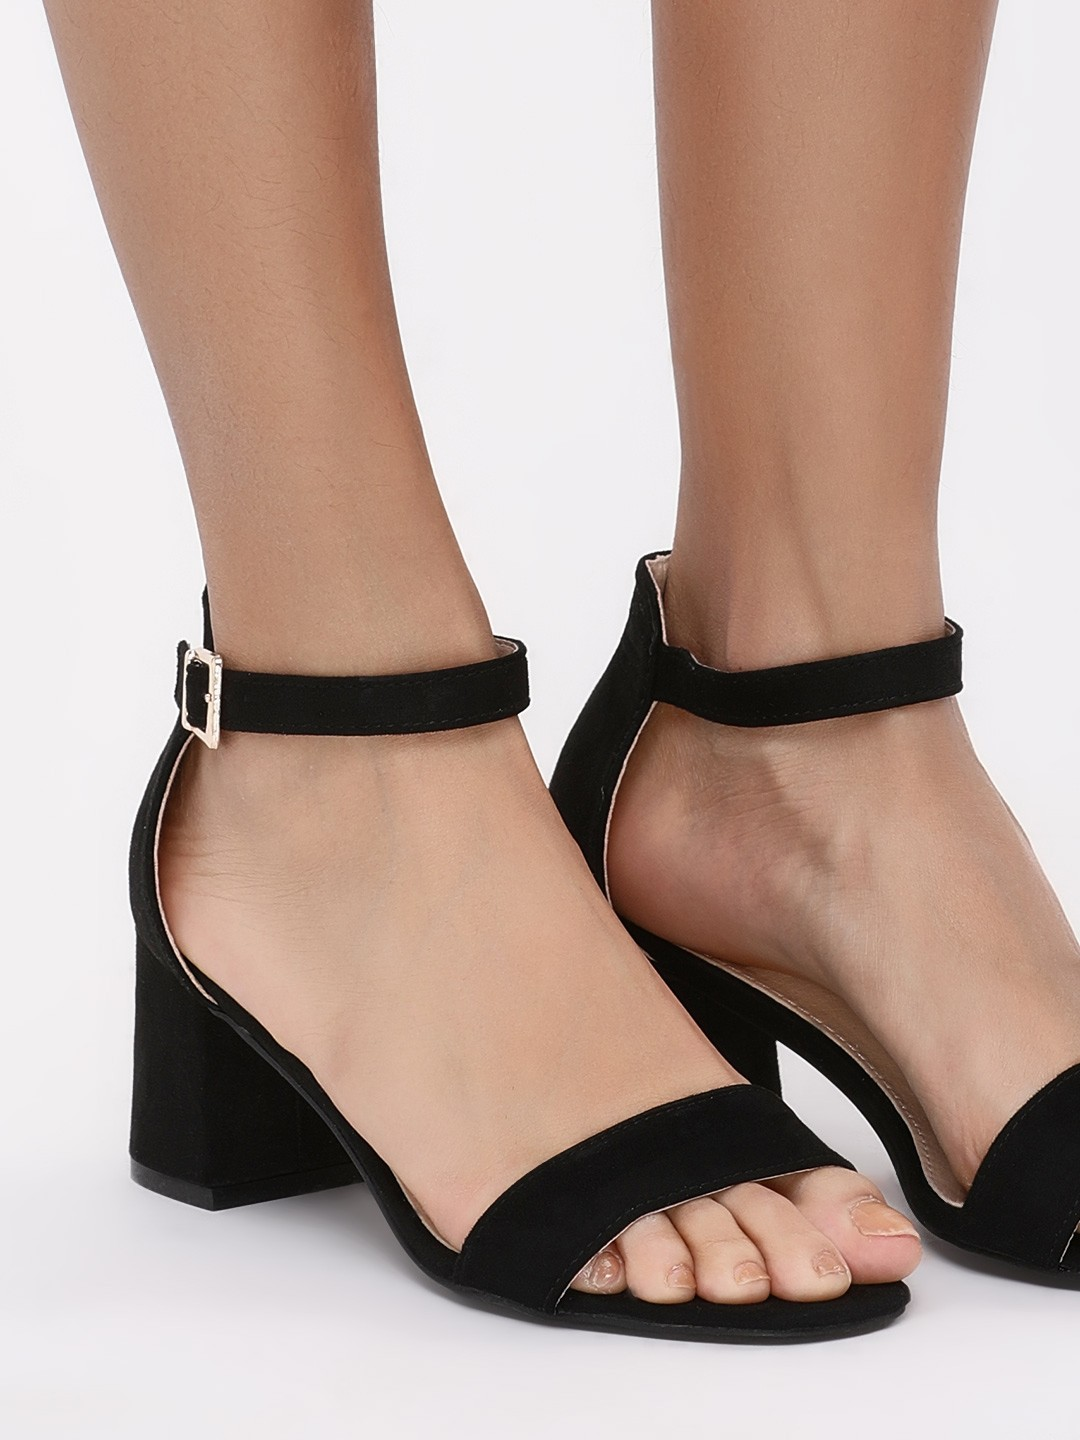 My Foot Couture Black Flared Mid Heeled Sandals 1